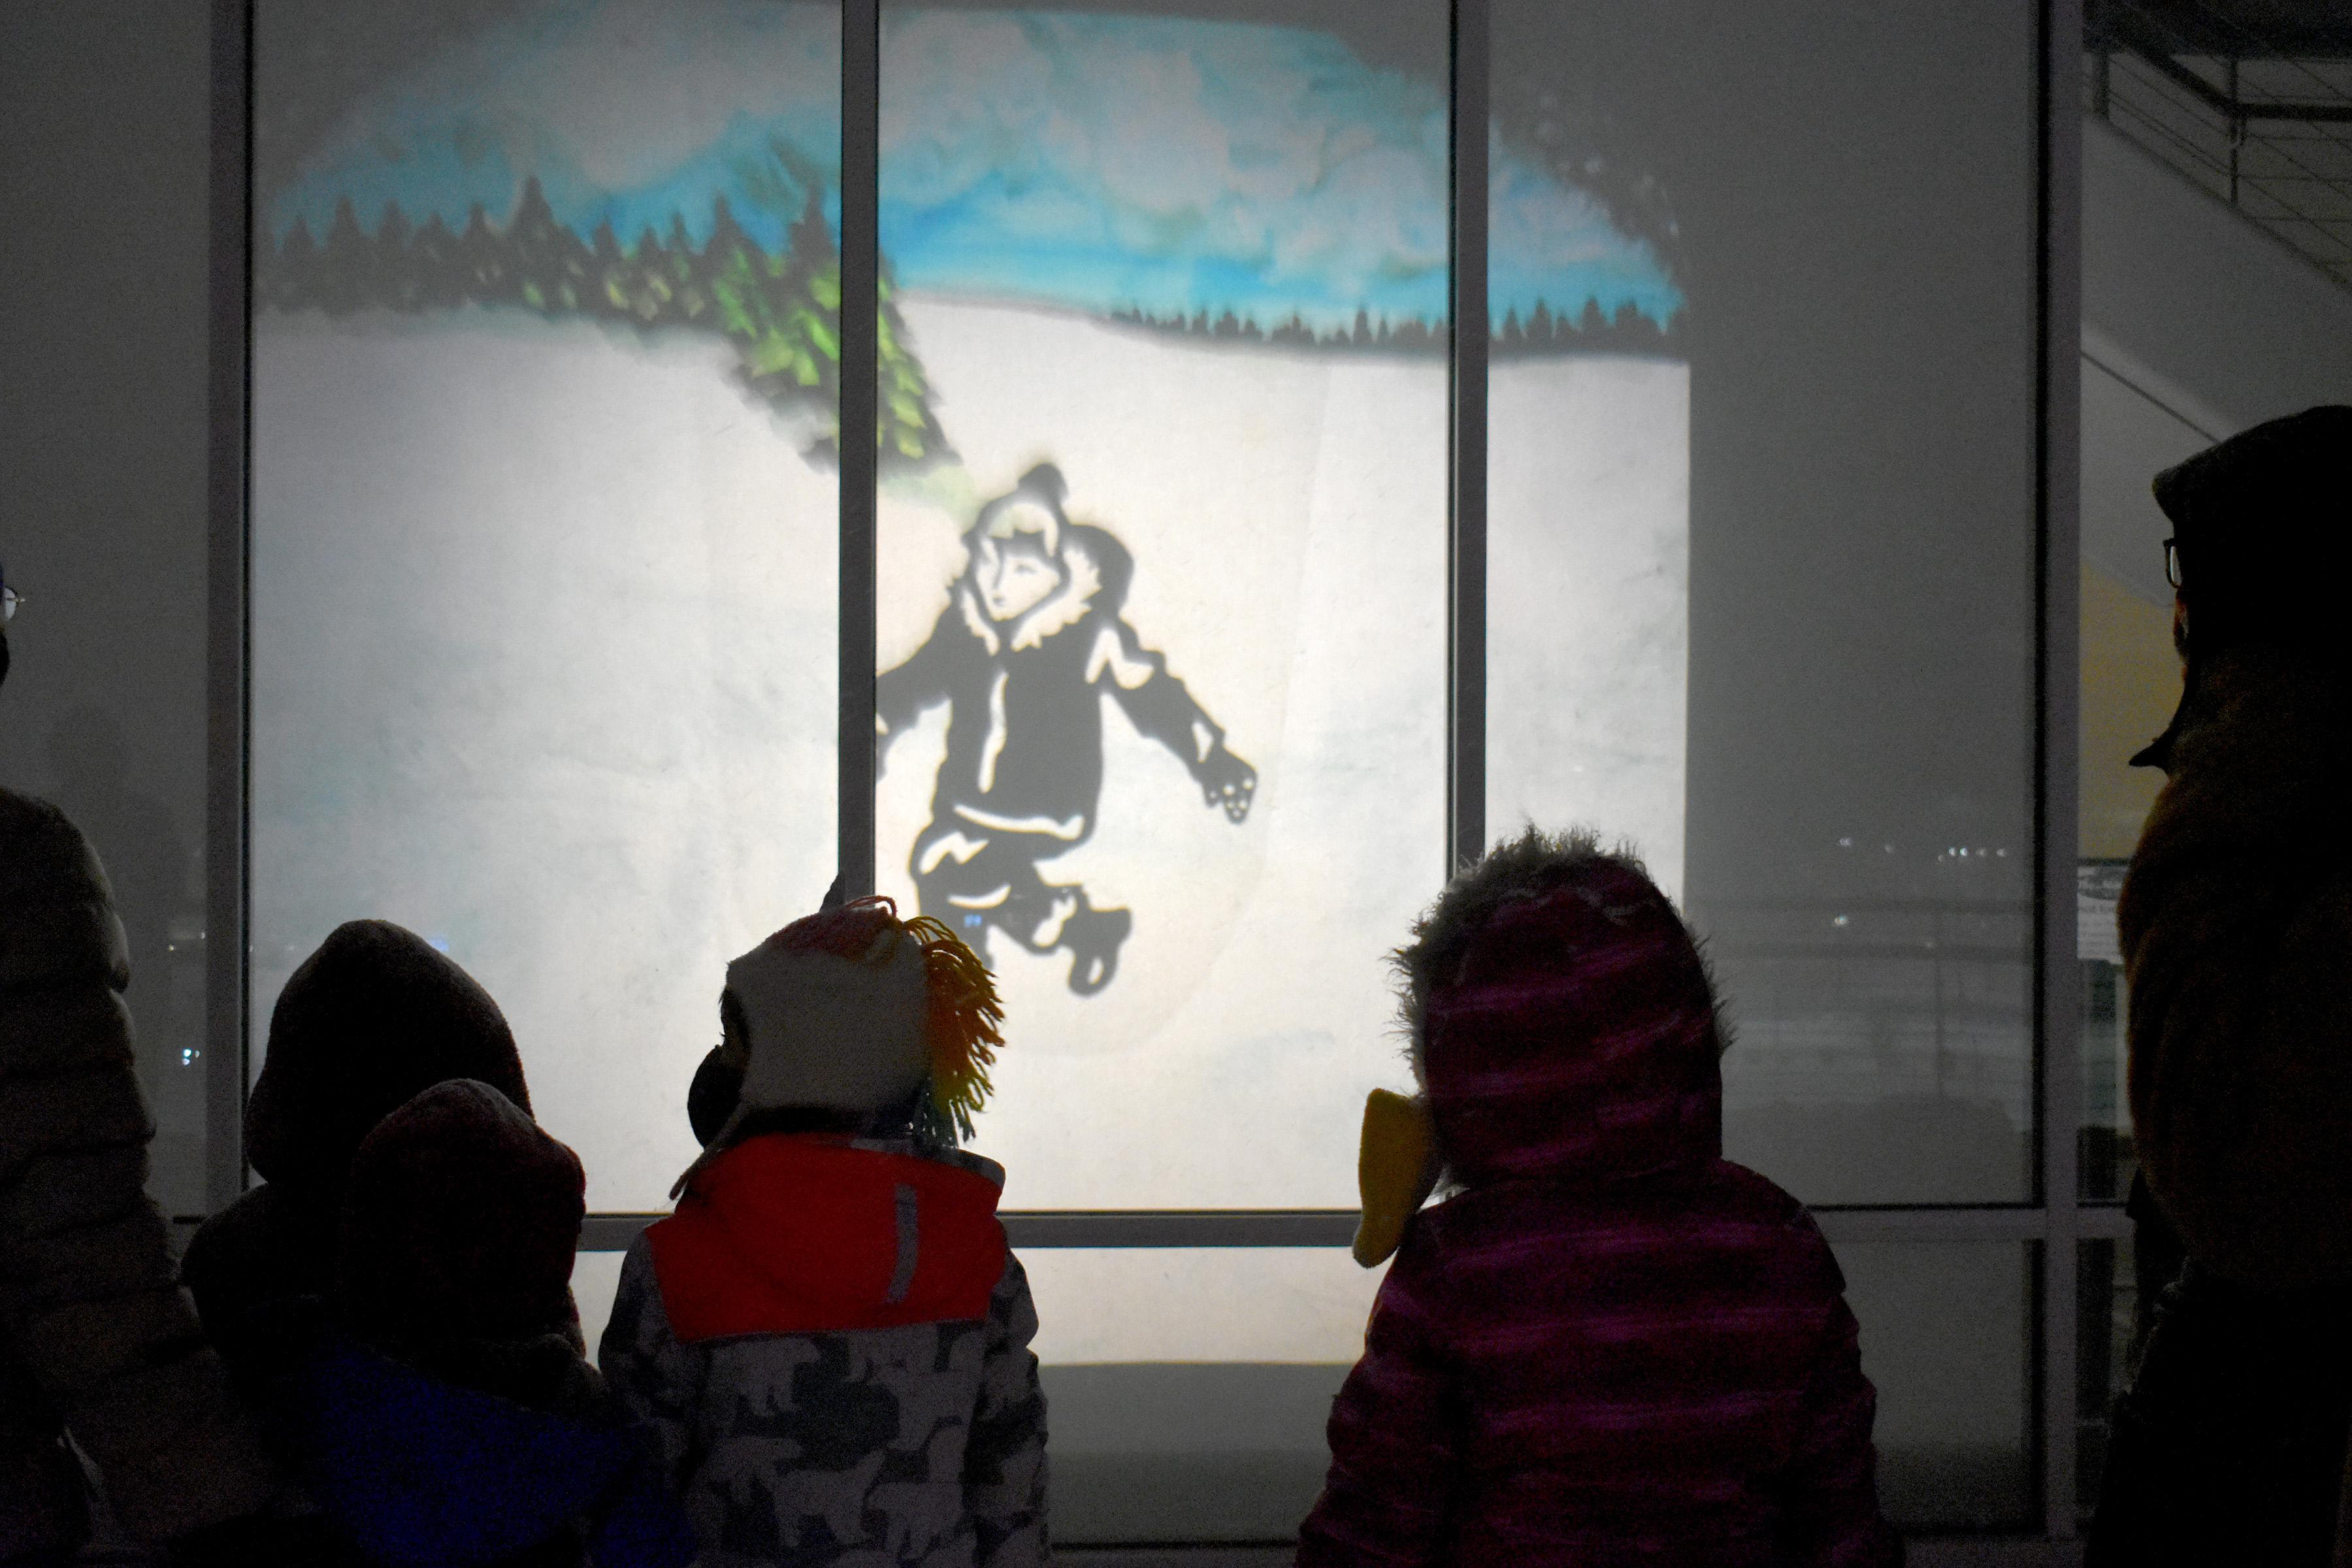 The exterior of the Ent Center for the Arts is turned into a magical forest scene using shadow puppets and overhead projections for the first live Theatreworks production in almost a year.